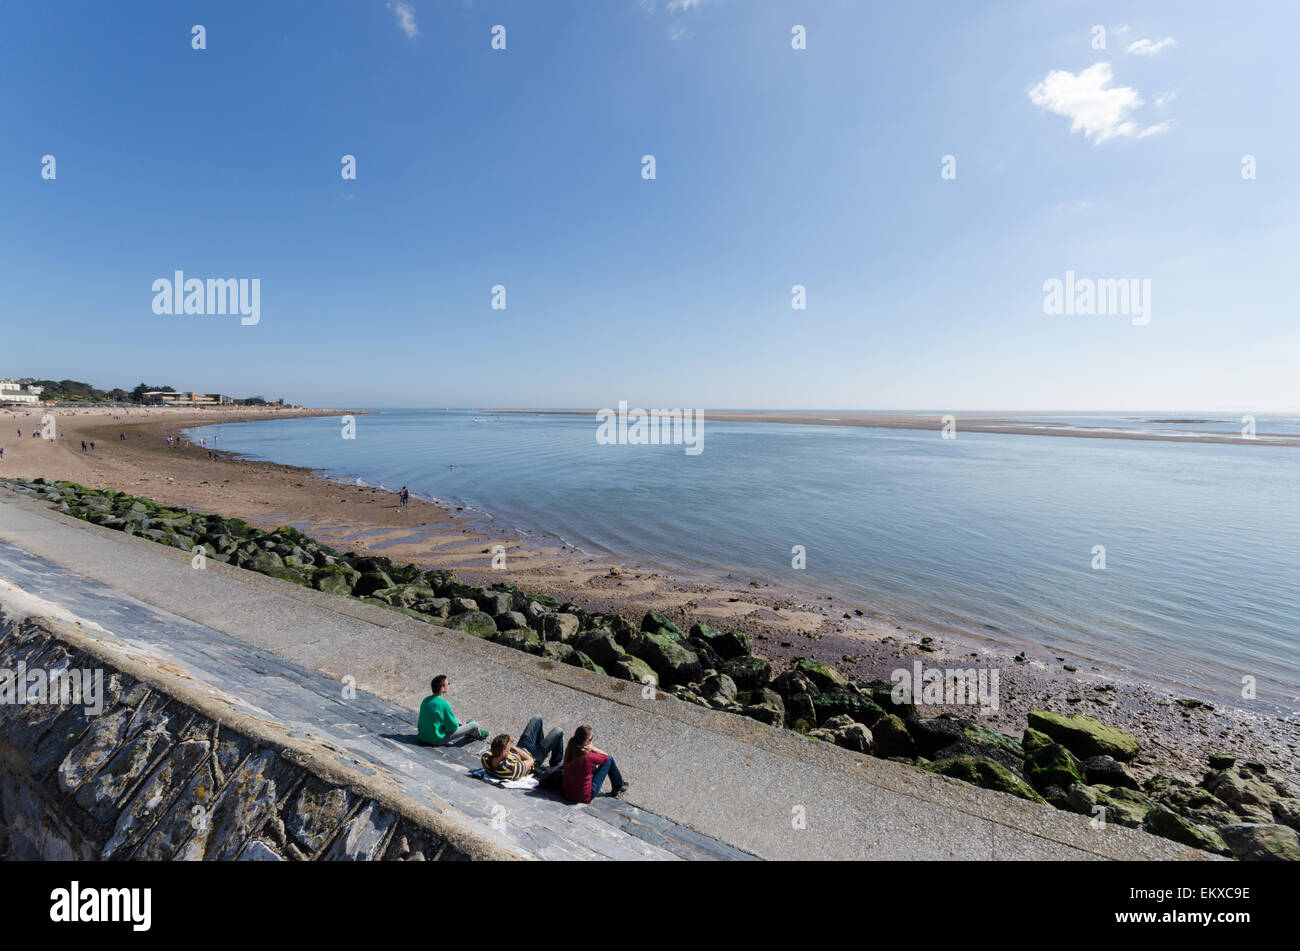 View of the River Exe estuary viewed from Esplanade in Exmouth - Stock Image